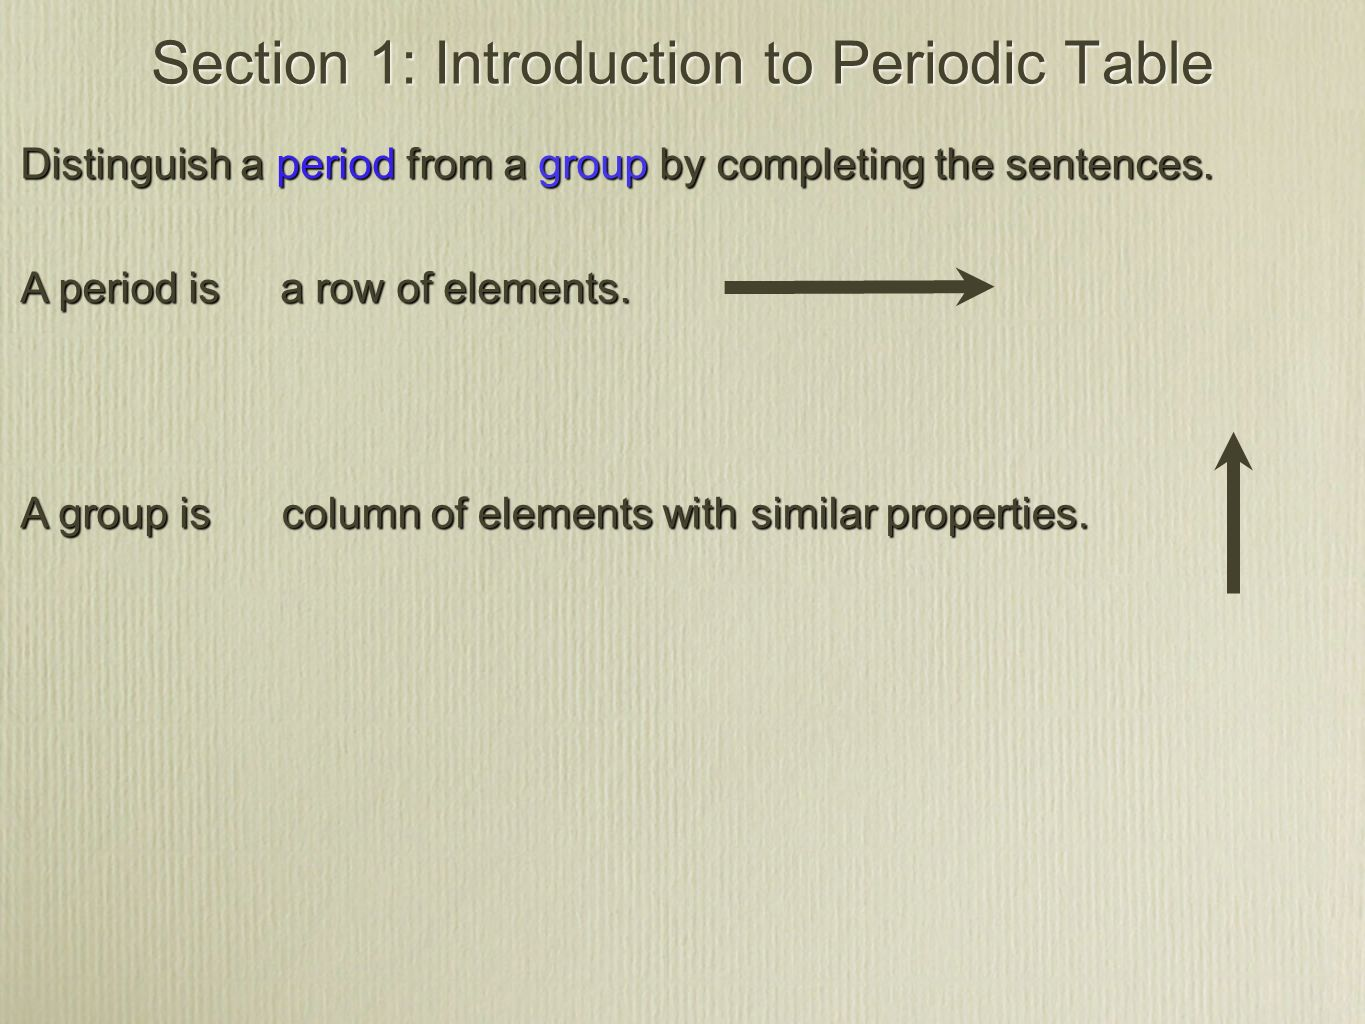 Section 1 Introduction To The Periodic Table